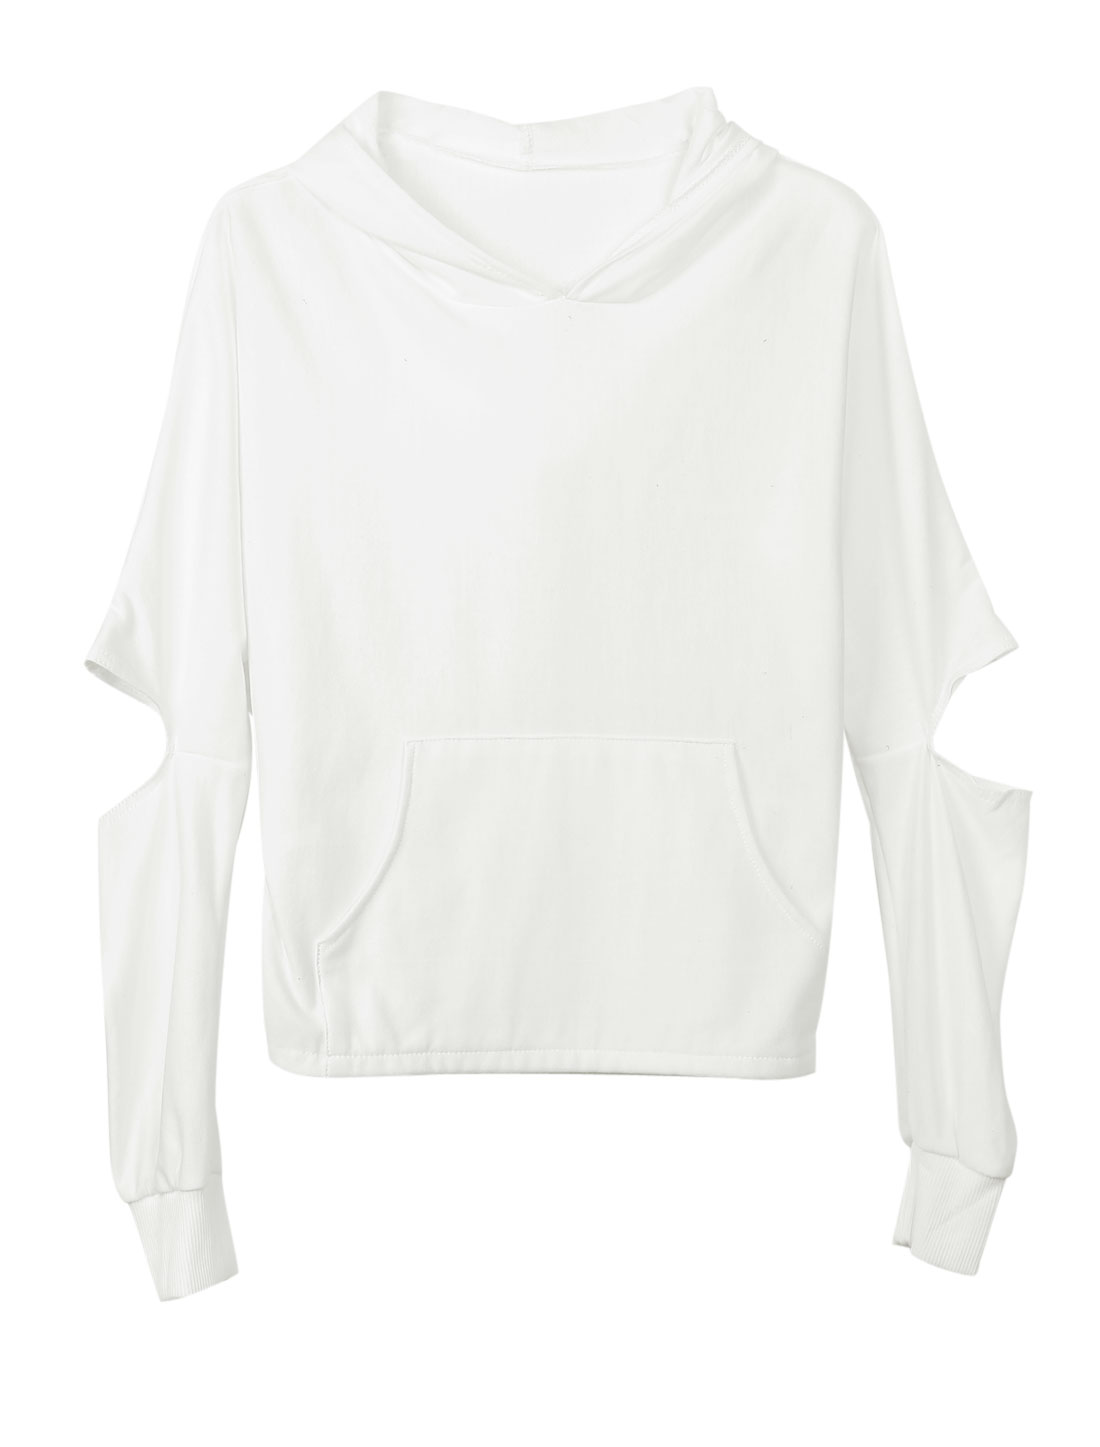 Ladies Batwing Sleeves Kangaroo Pocket White Hooded Top XS